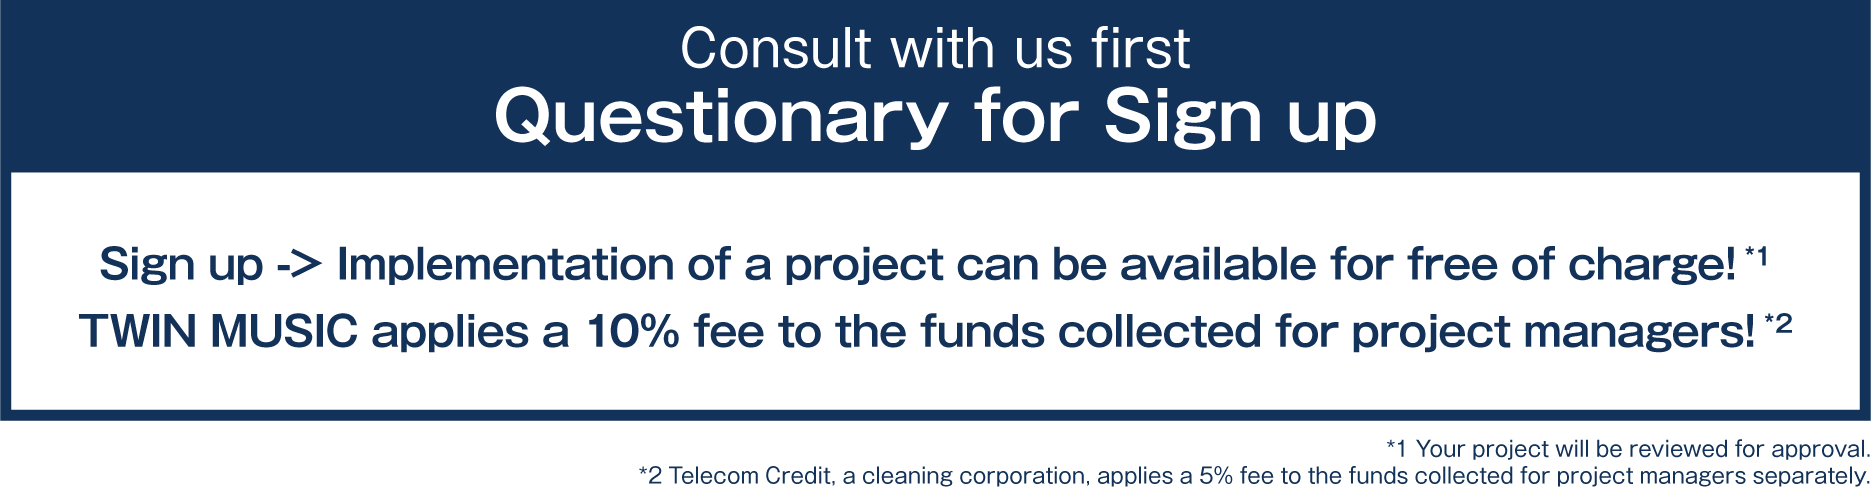 Consult with us first/Questionary for Sign Up/Sign up -> Implementation of a project can be available for free of charge!/TWIN MUSIC applies a 10% fee to the funds collected for project managers!